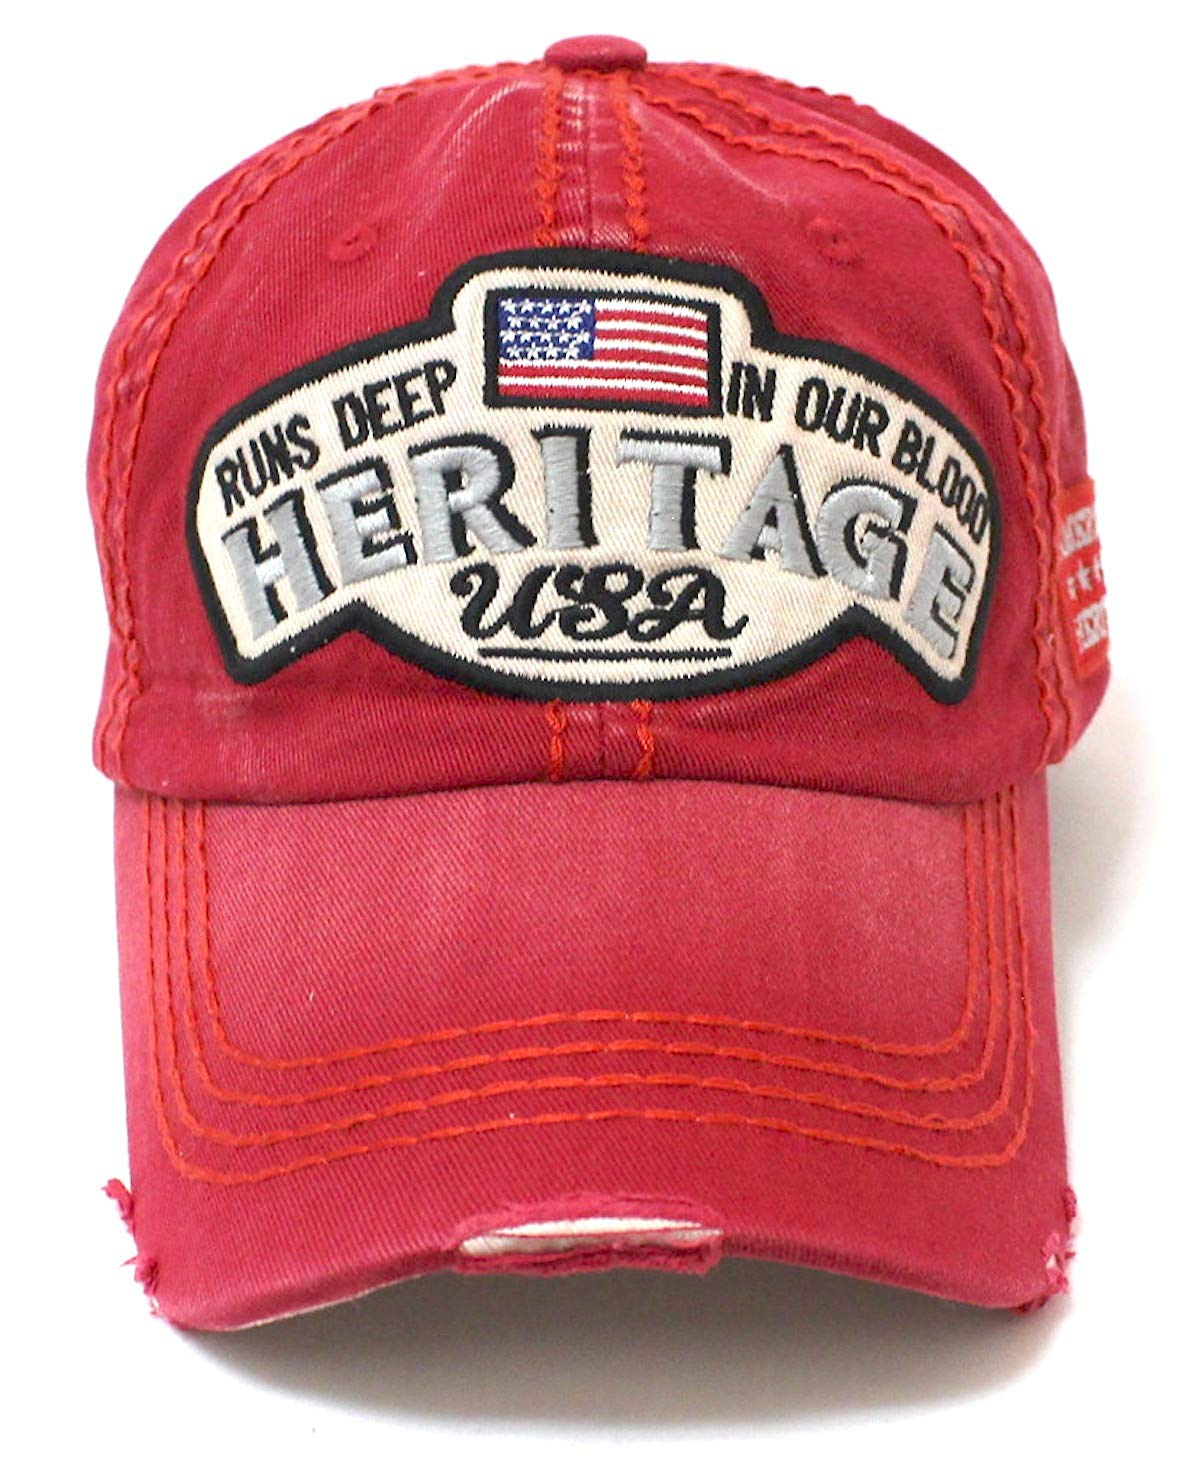 Red Heritage USA Distressed Baseball Cap - Caps 'N Vintage